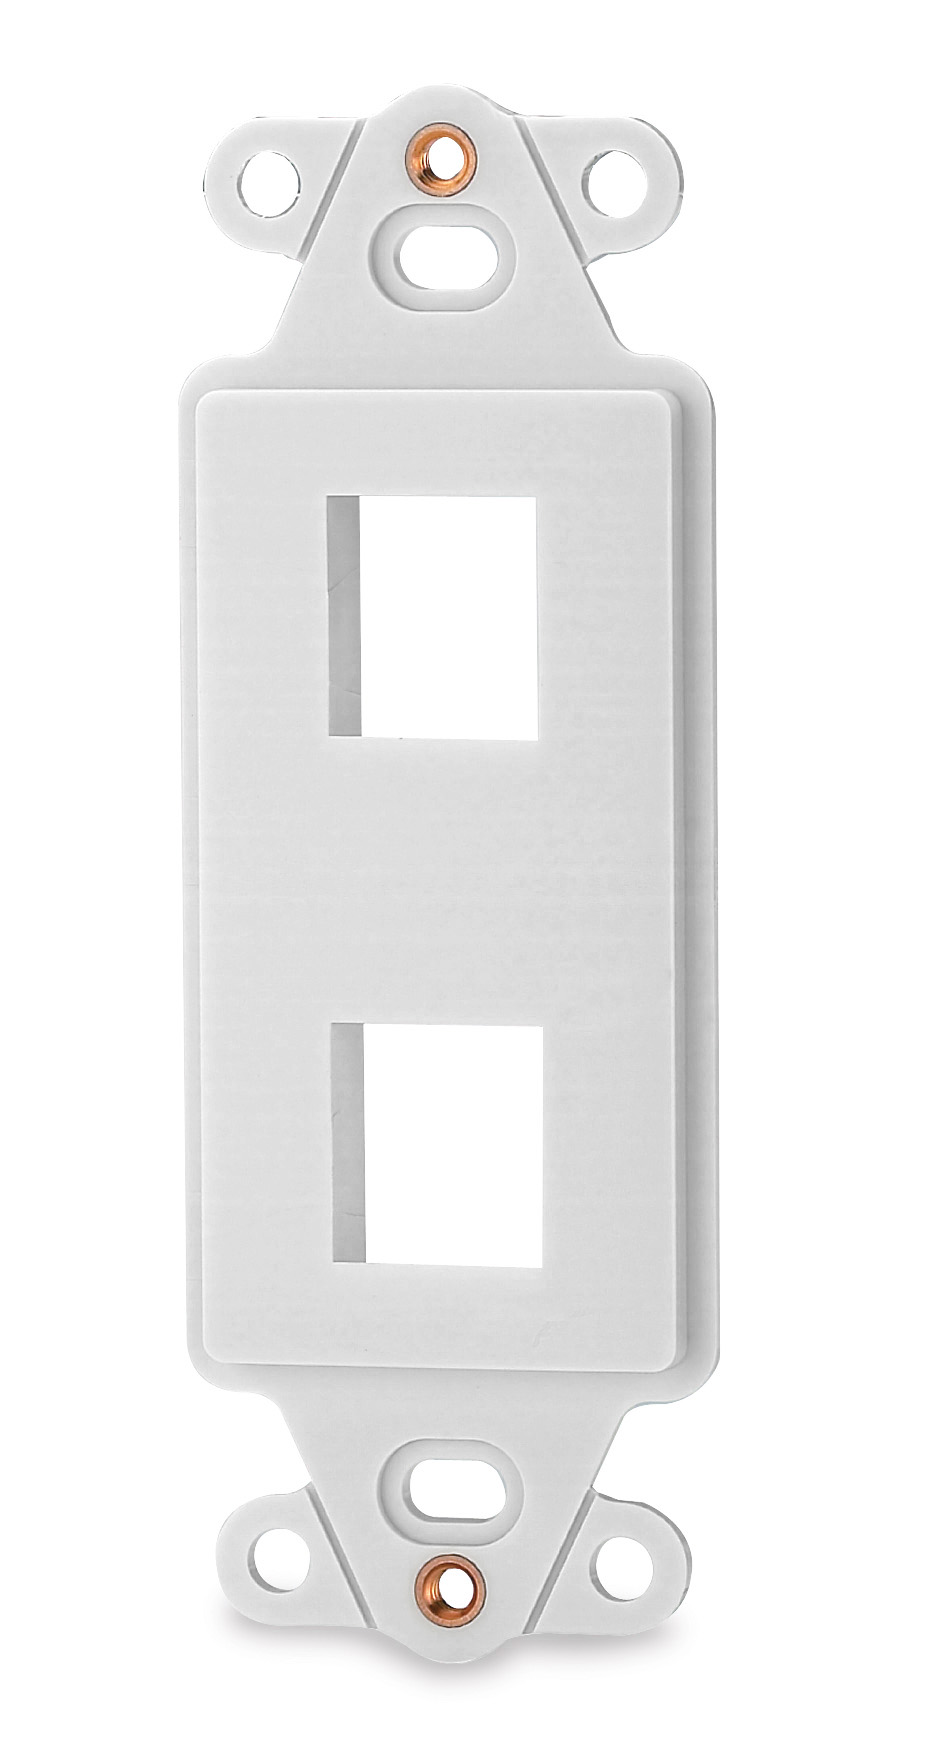 SGM DA-2-WH SGM TWO PORT PLATE DECORA WHITE